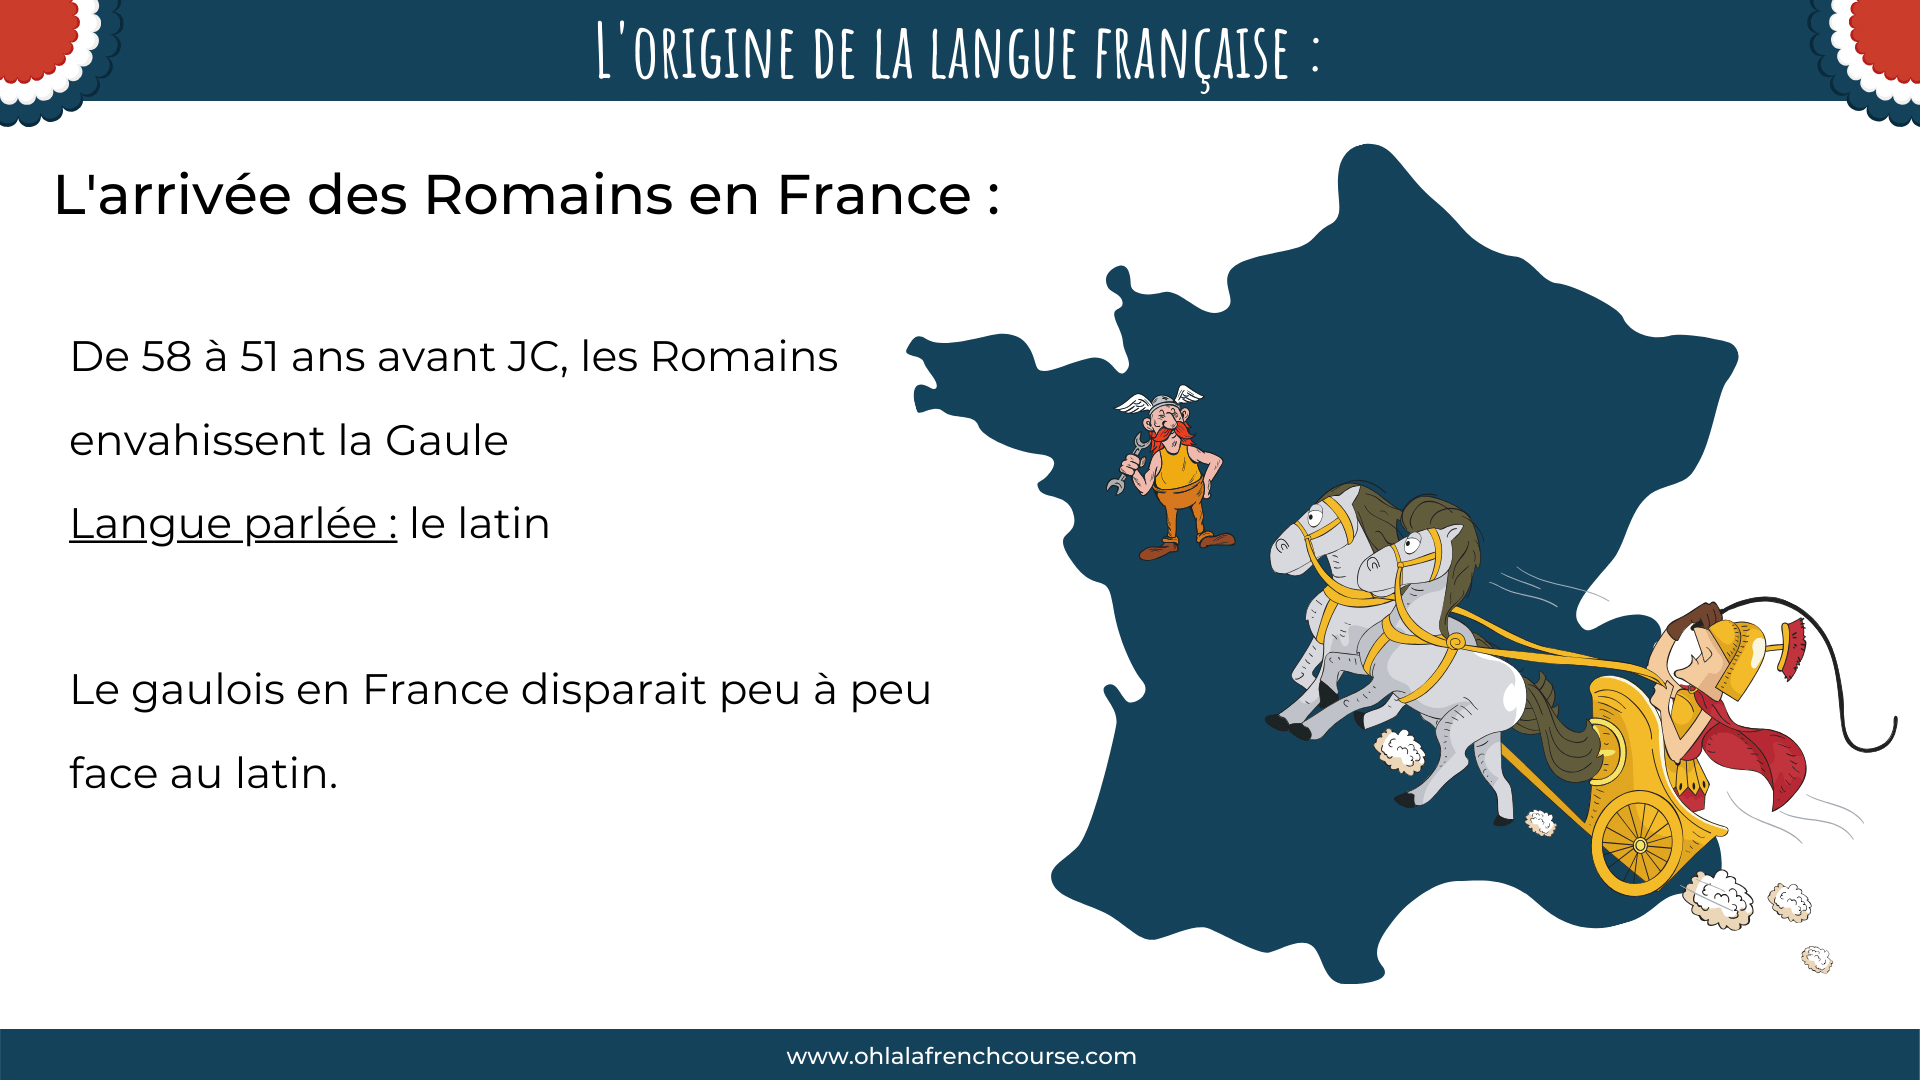 The arrival of the Romans in France